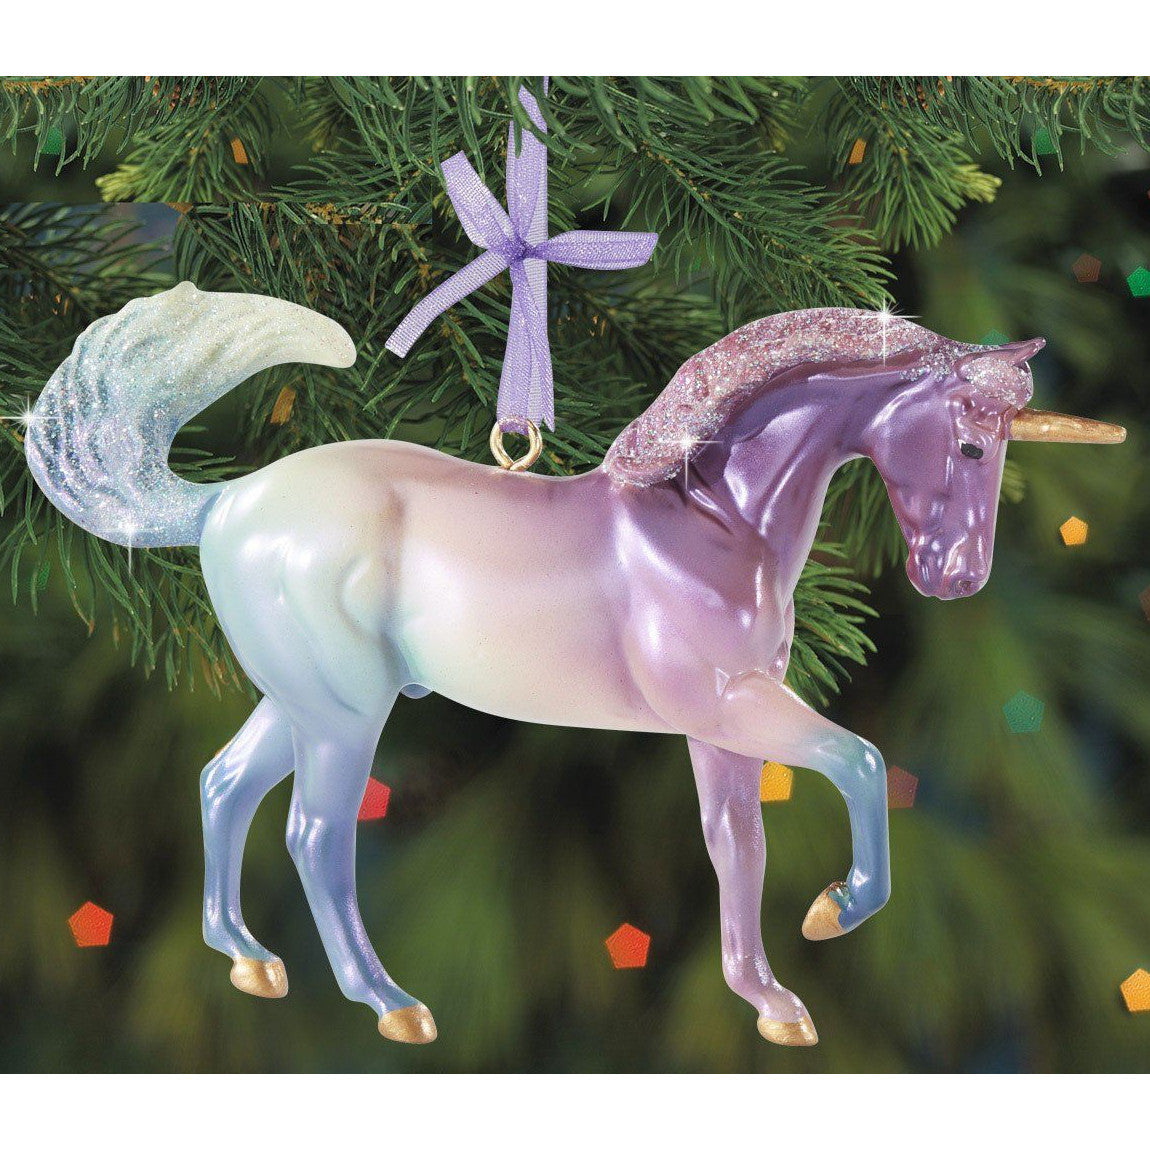 Breyer Cosmo - Unicorn Ornament